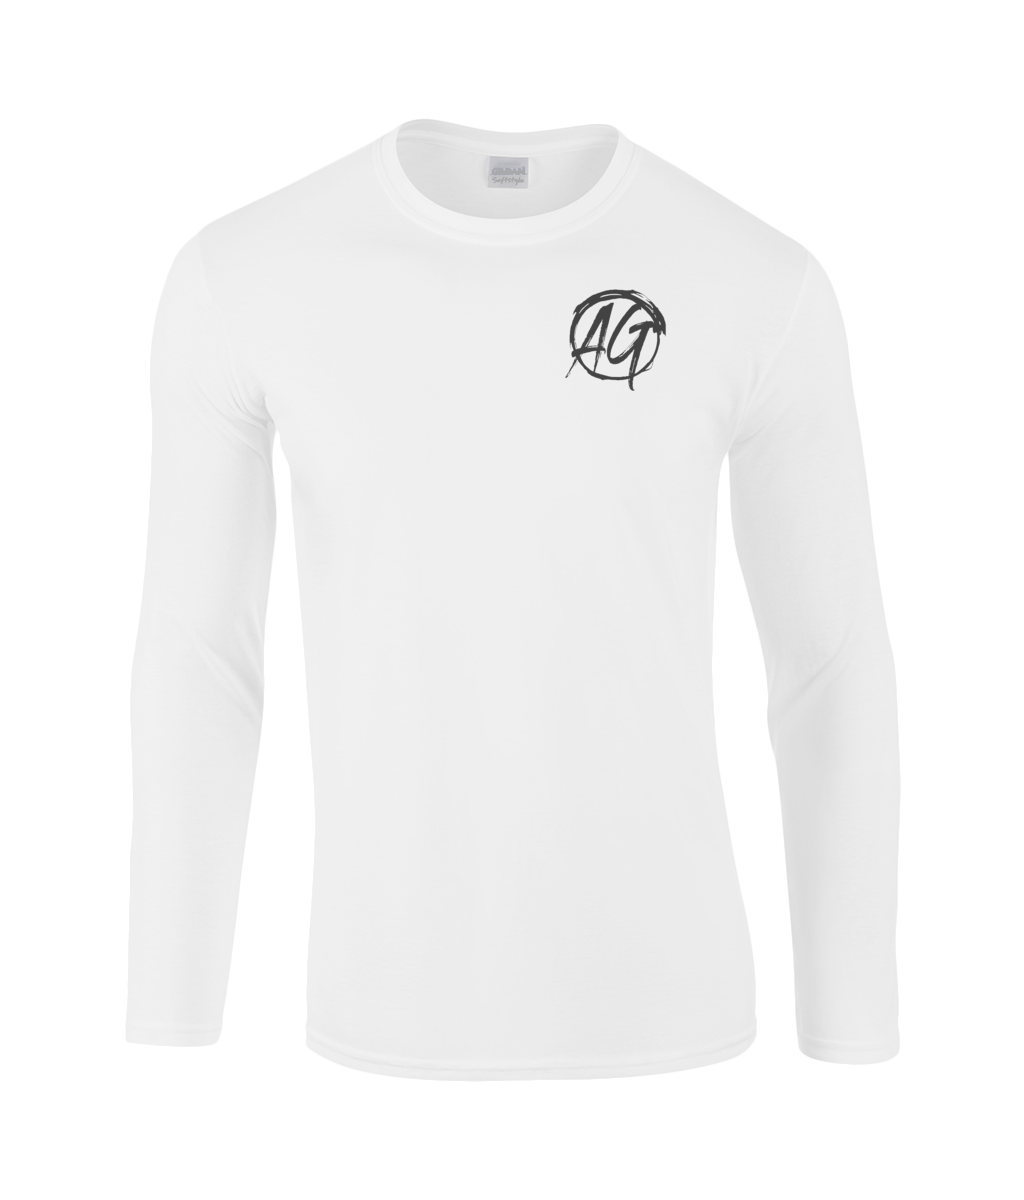 AG Wear Gildan SoftStyle® Long Sleeve T-Shirt White